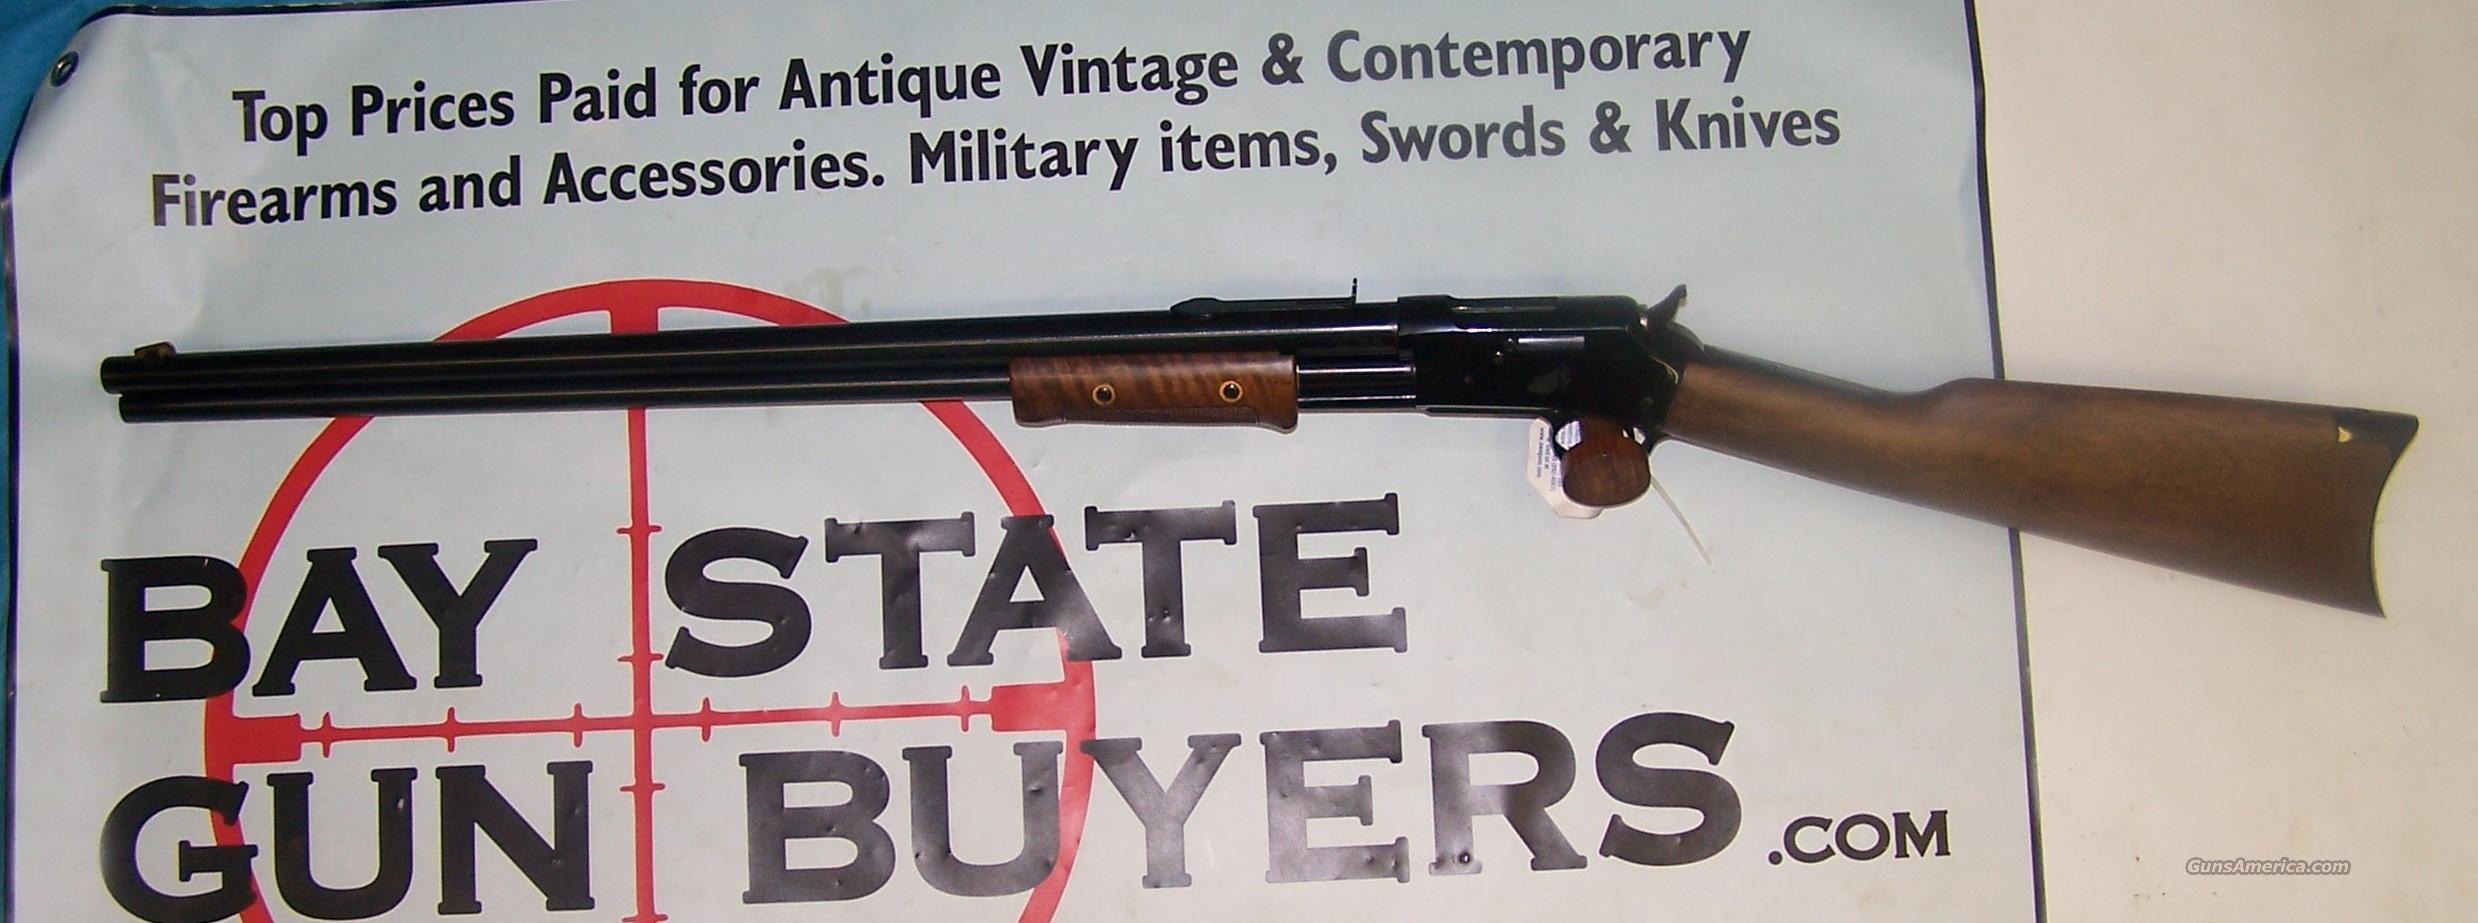 American Western Arms LIGHTNING Pump Action Rifle 38 special caliber LIKE NEW  Guns > Rifles > American Western Arms (AWA) Rifles